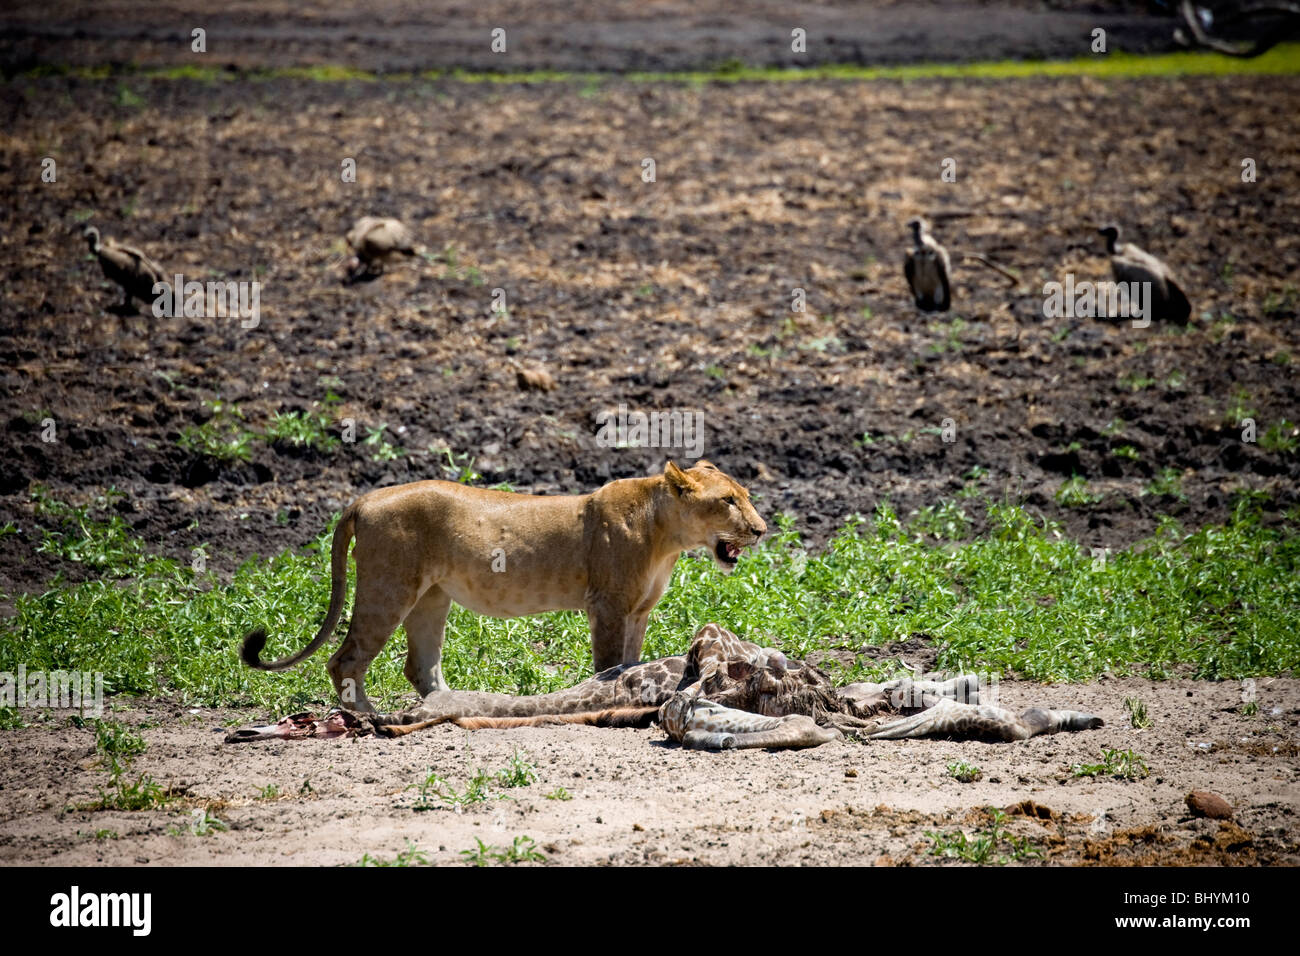 Young male lion, Selous Game Reserve, Tanzania, East Africa - Stock Image